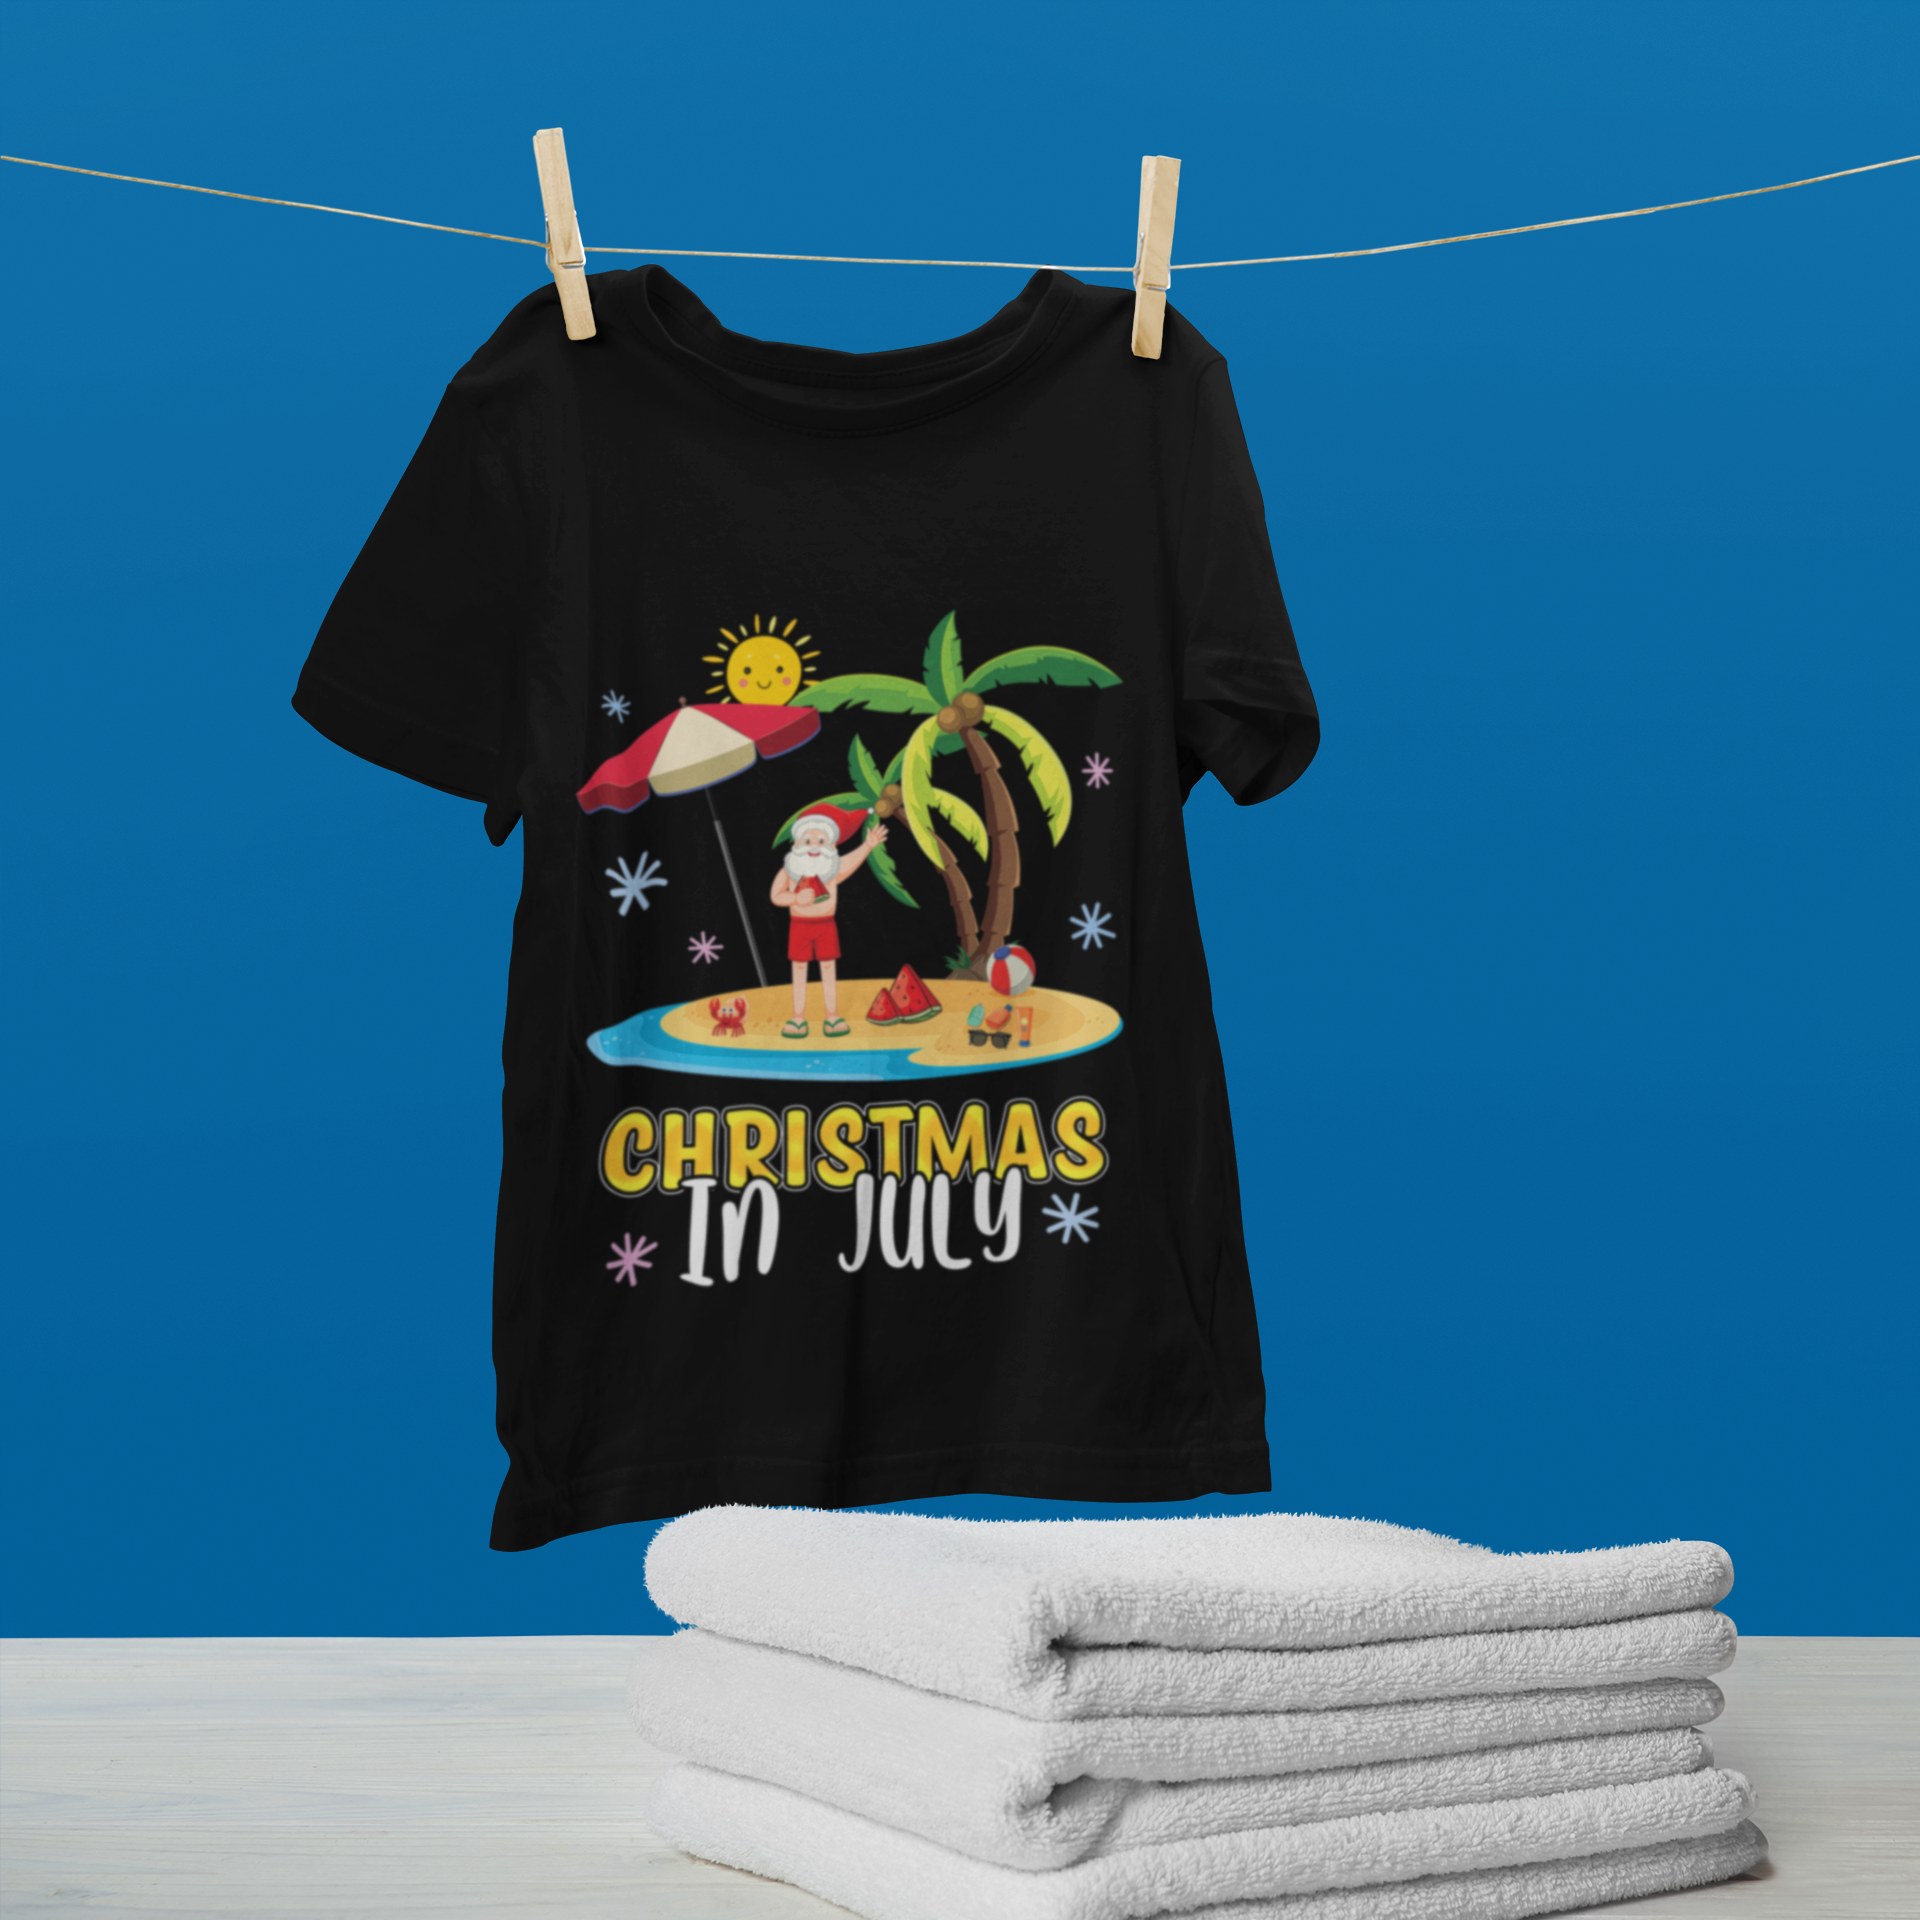 You are currently viewing Christmas in July 25: Why Should Buy Latest T Shirt?